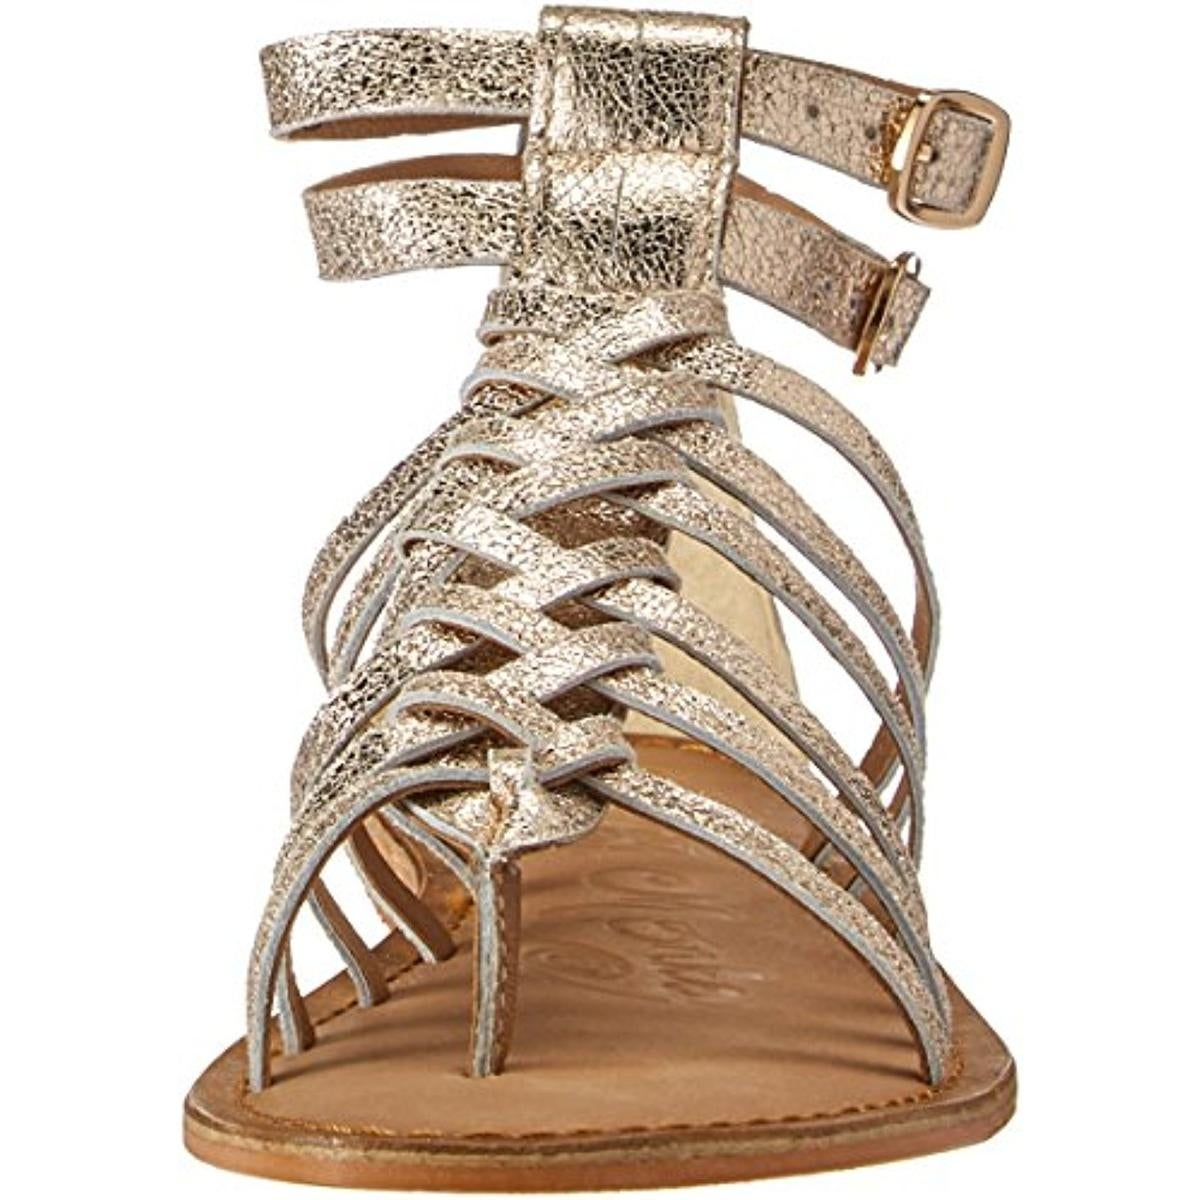 a9dc6dd4ff6 Shop Naughty Monkey Womens Boardwalk Gladiator Sandals Distressed Leather -  Free Shipping On Orders Over  45 - Overstock - 21108961